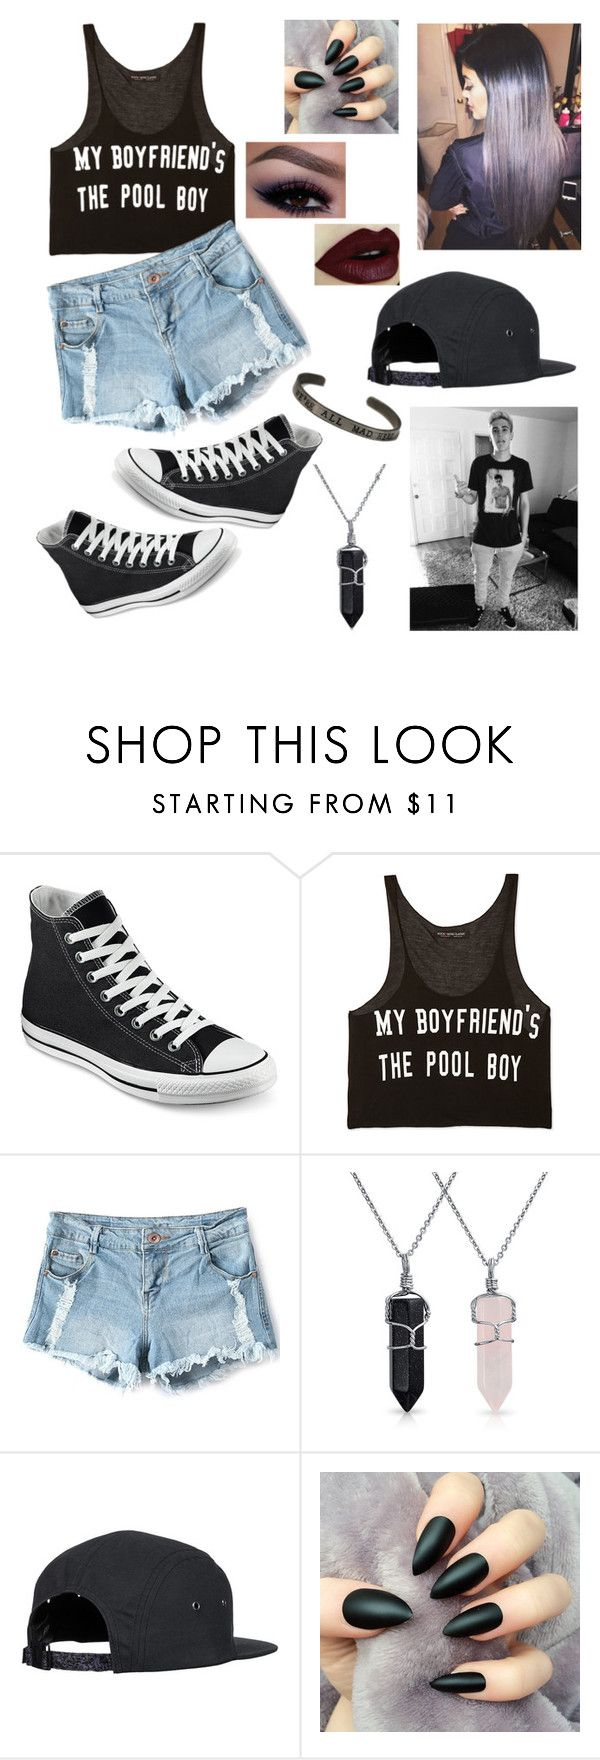 """""""sammys my pool boy"""" by raevanmilligan22 ❤ liked on Polyvore featuring Converse, Forever 21, Bling Jewelry, women's clothing, women's fashion, women, female, woman, misses and juniors"""